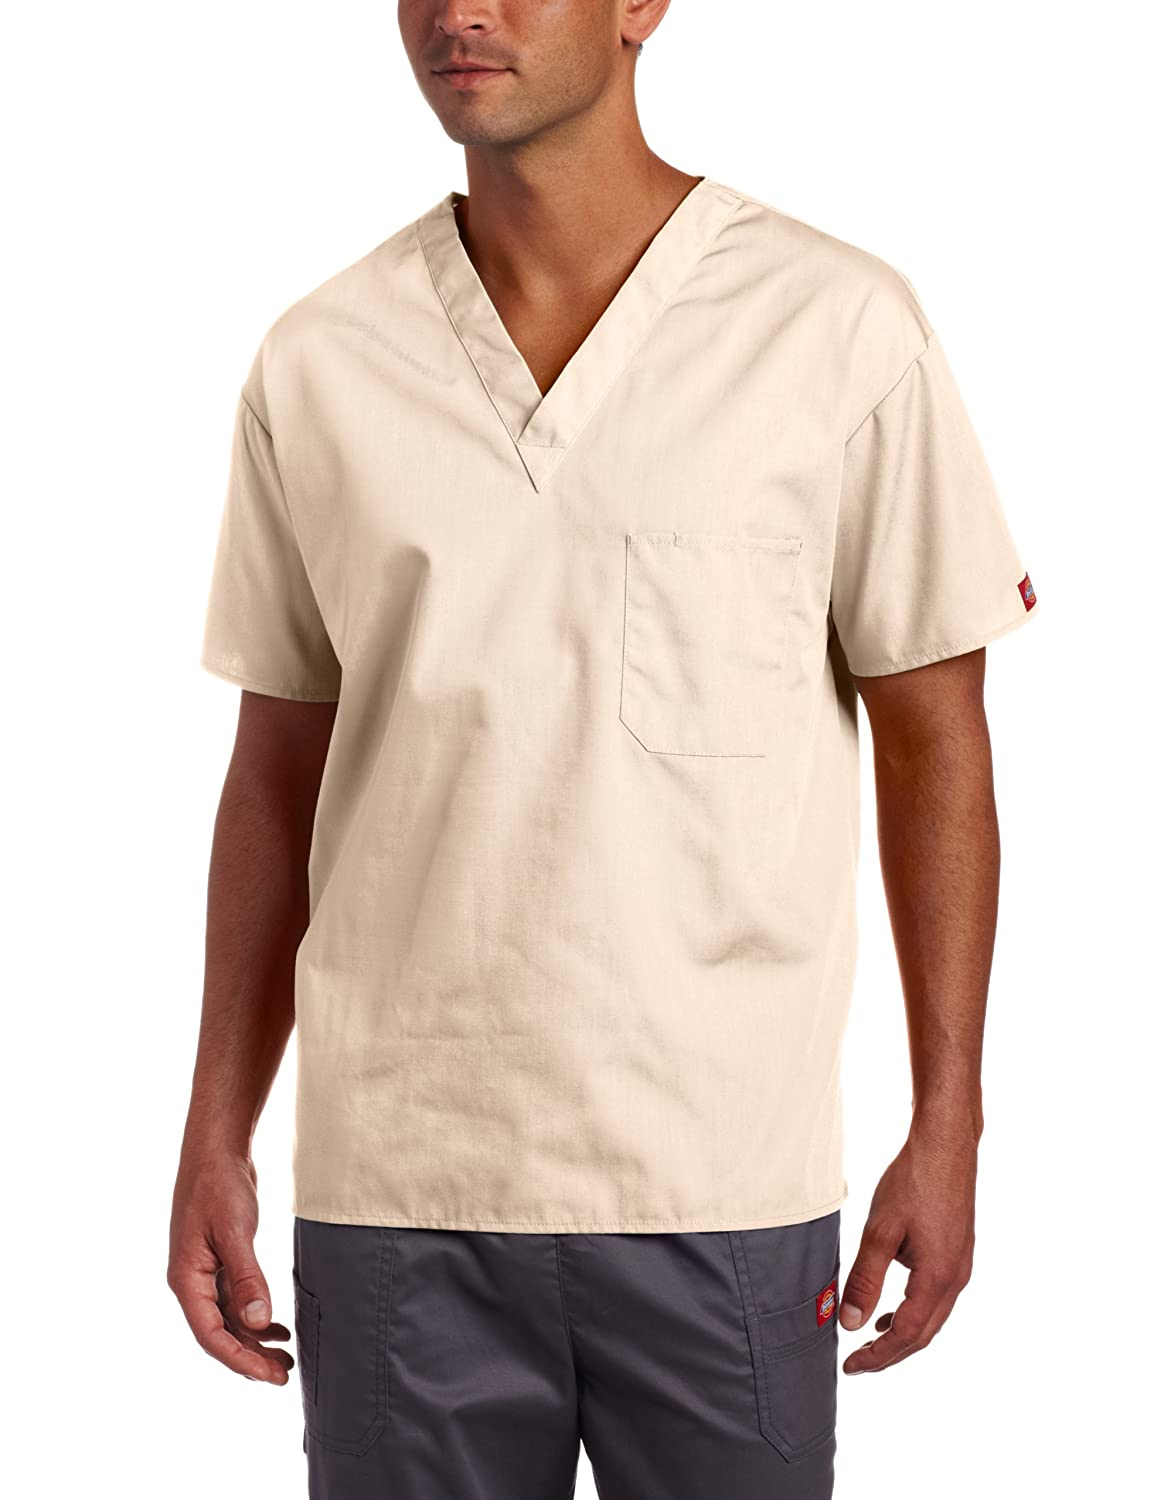 41e18fa8770 Dickies label on left sleeve, side vents for ease of movement. Center back  length: 28 inch. Dickies Everyday Scrub